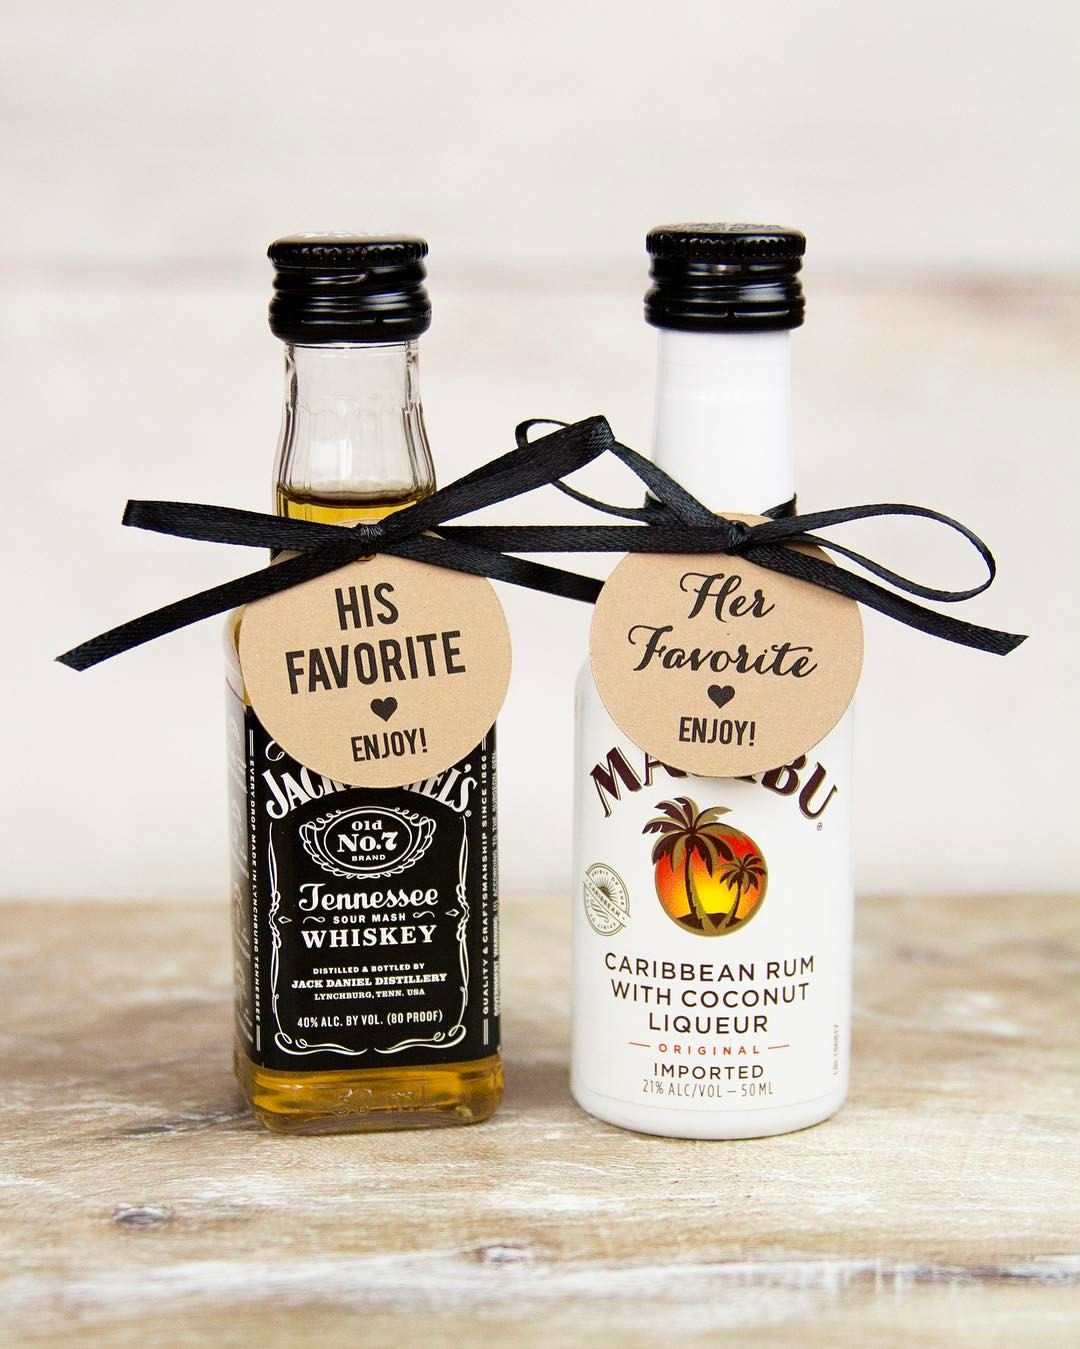 Wedding Favours And Gifts: Pin By Erica Driscoll On Mini Food In 2019